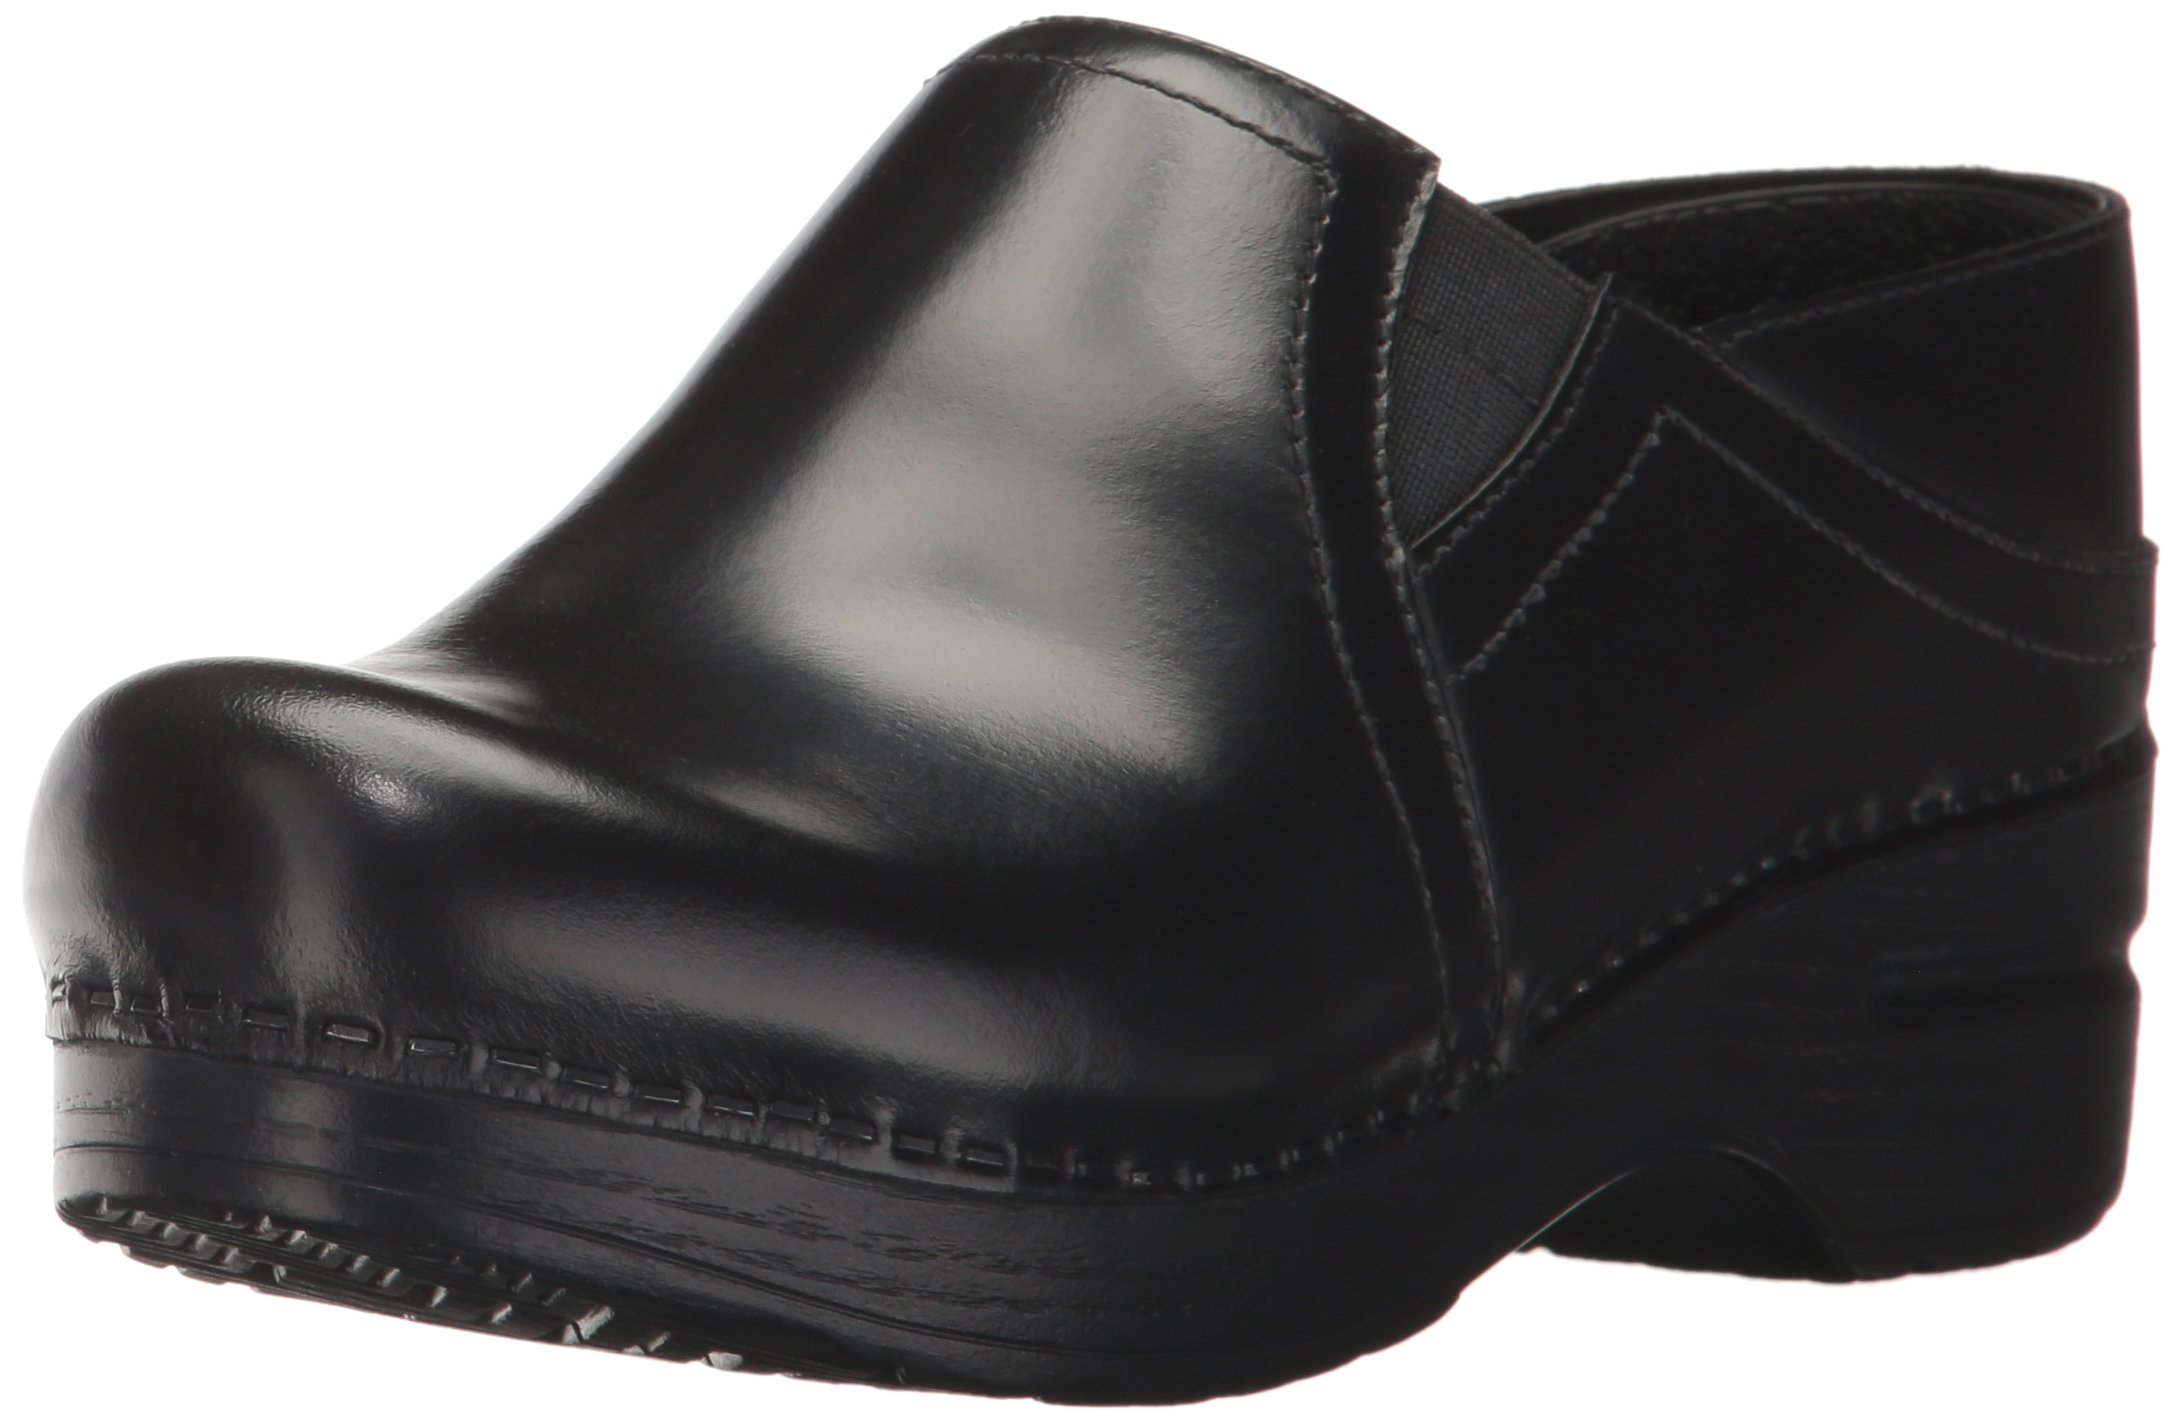 Dansko Women's Pepper Mule, Black Cabrio, 39 EU/8.5-9 M US